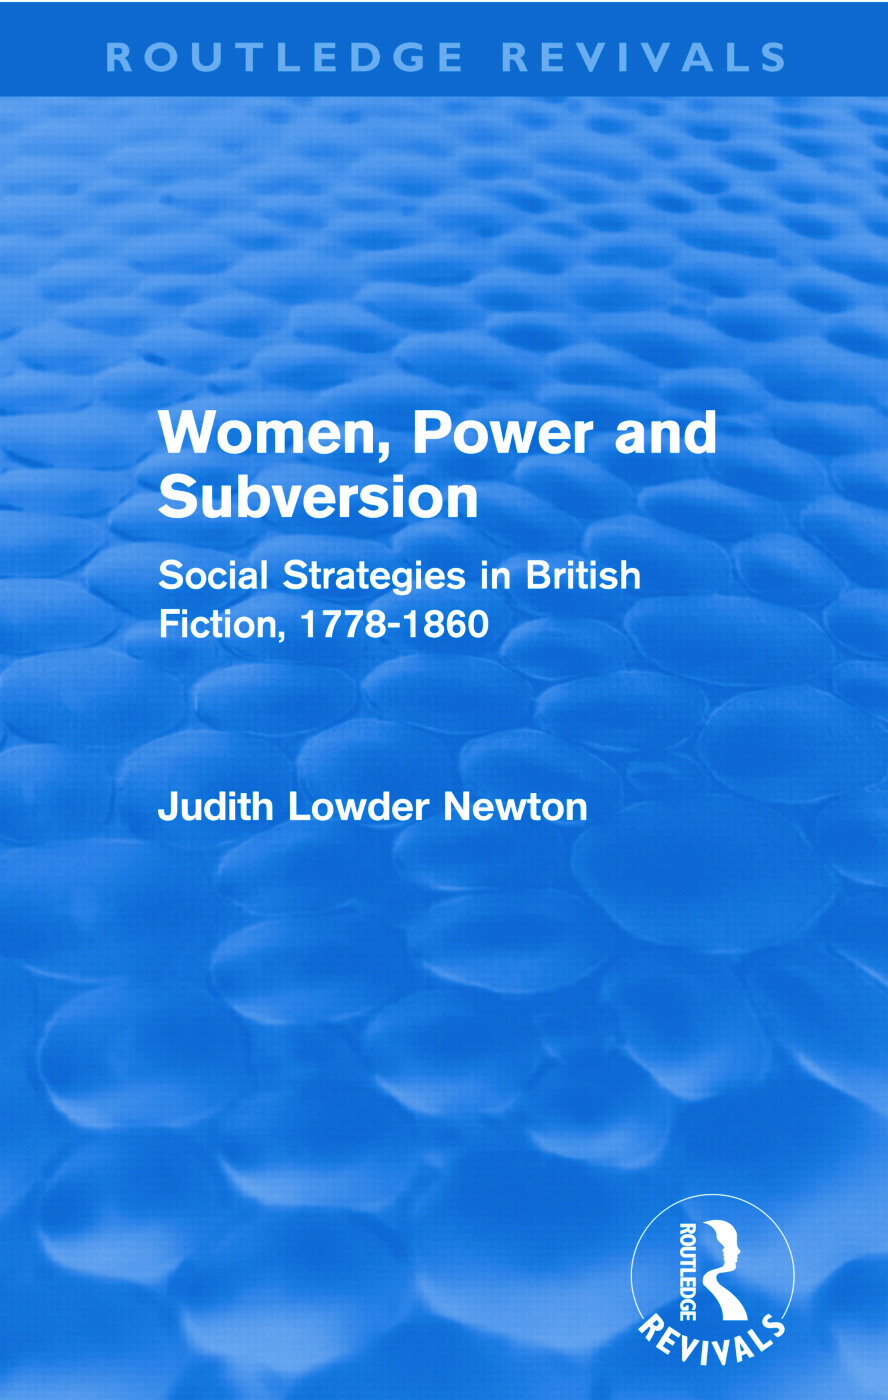 Women, Power and Subversion (Routledge Revivals): Social Strategies in British Fiction, 1778-1860 (Paperback) book cover